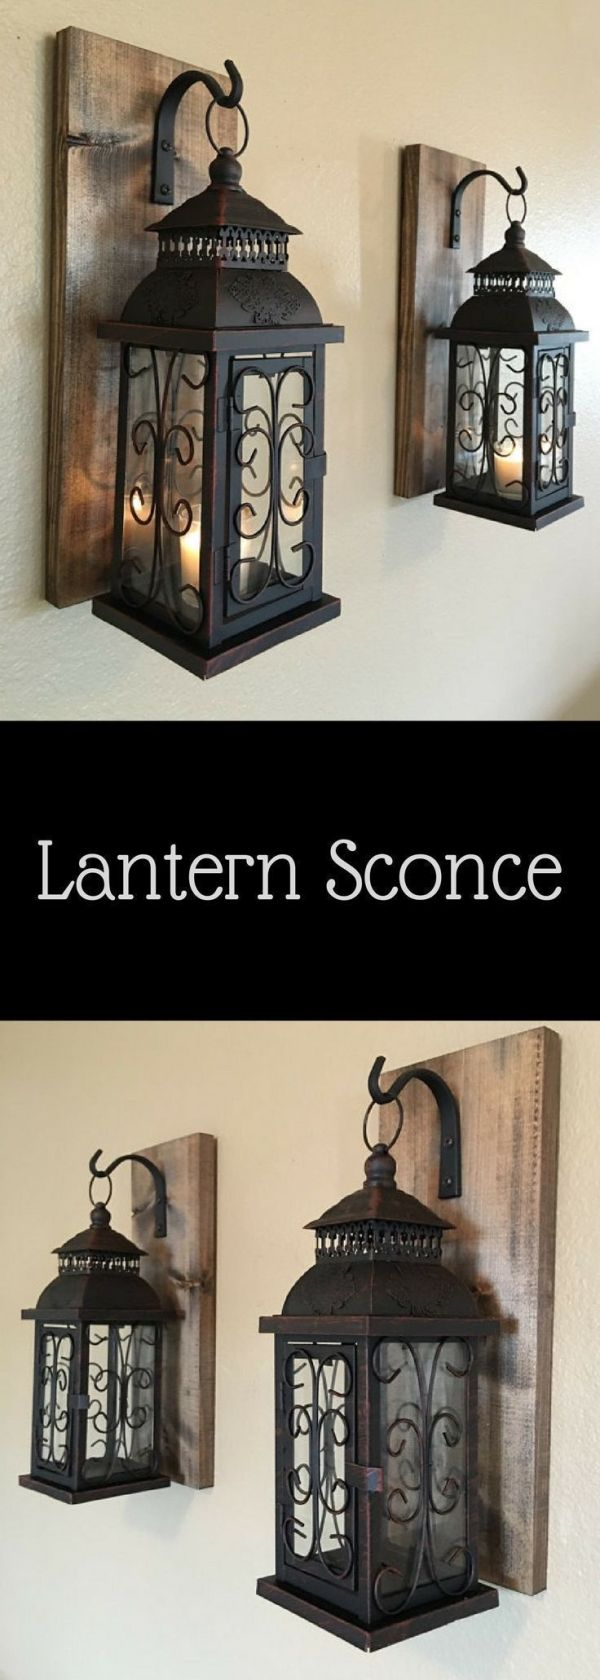 Lantern pair wall decor, wall sconces, bathroom decor, home and living, wrought iron hook, rustic wood boards, bedroom decor, rustic home décor, diy, country, living room, farmhouse, on a budget, modern, ideas, cabin, kitchen, vintage, bedroom, bathroom #homedecorideas #bedroomideasdiy by paige